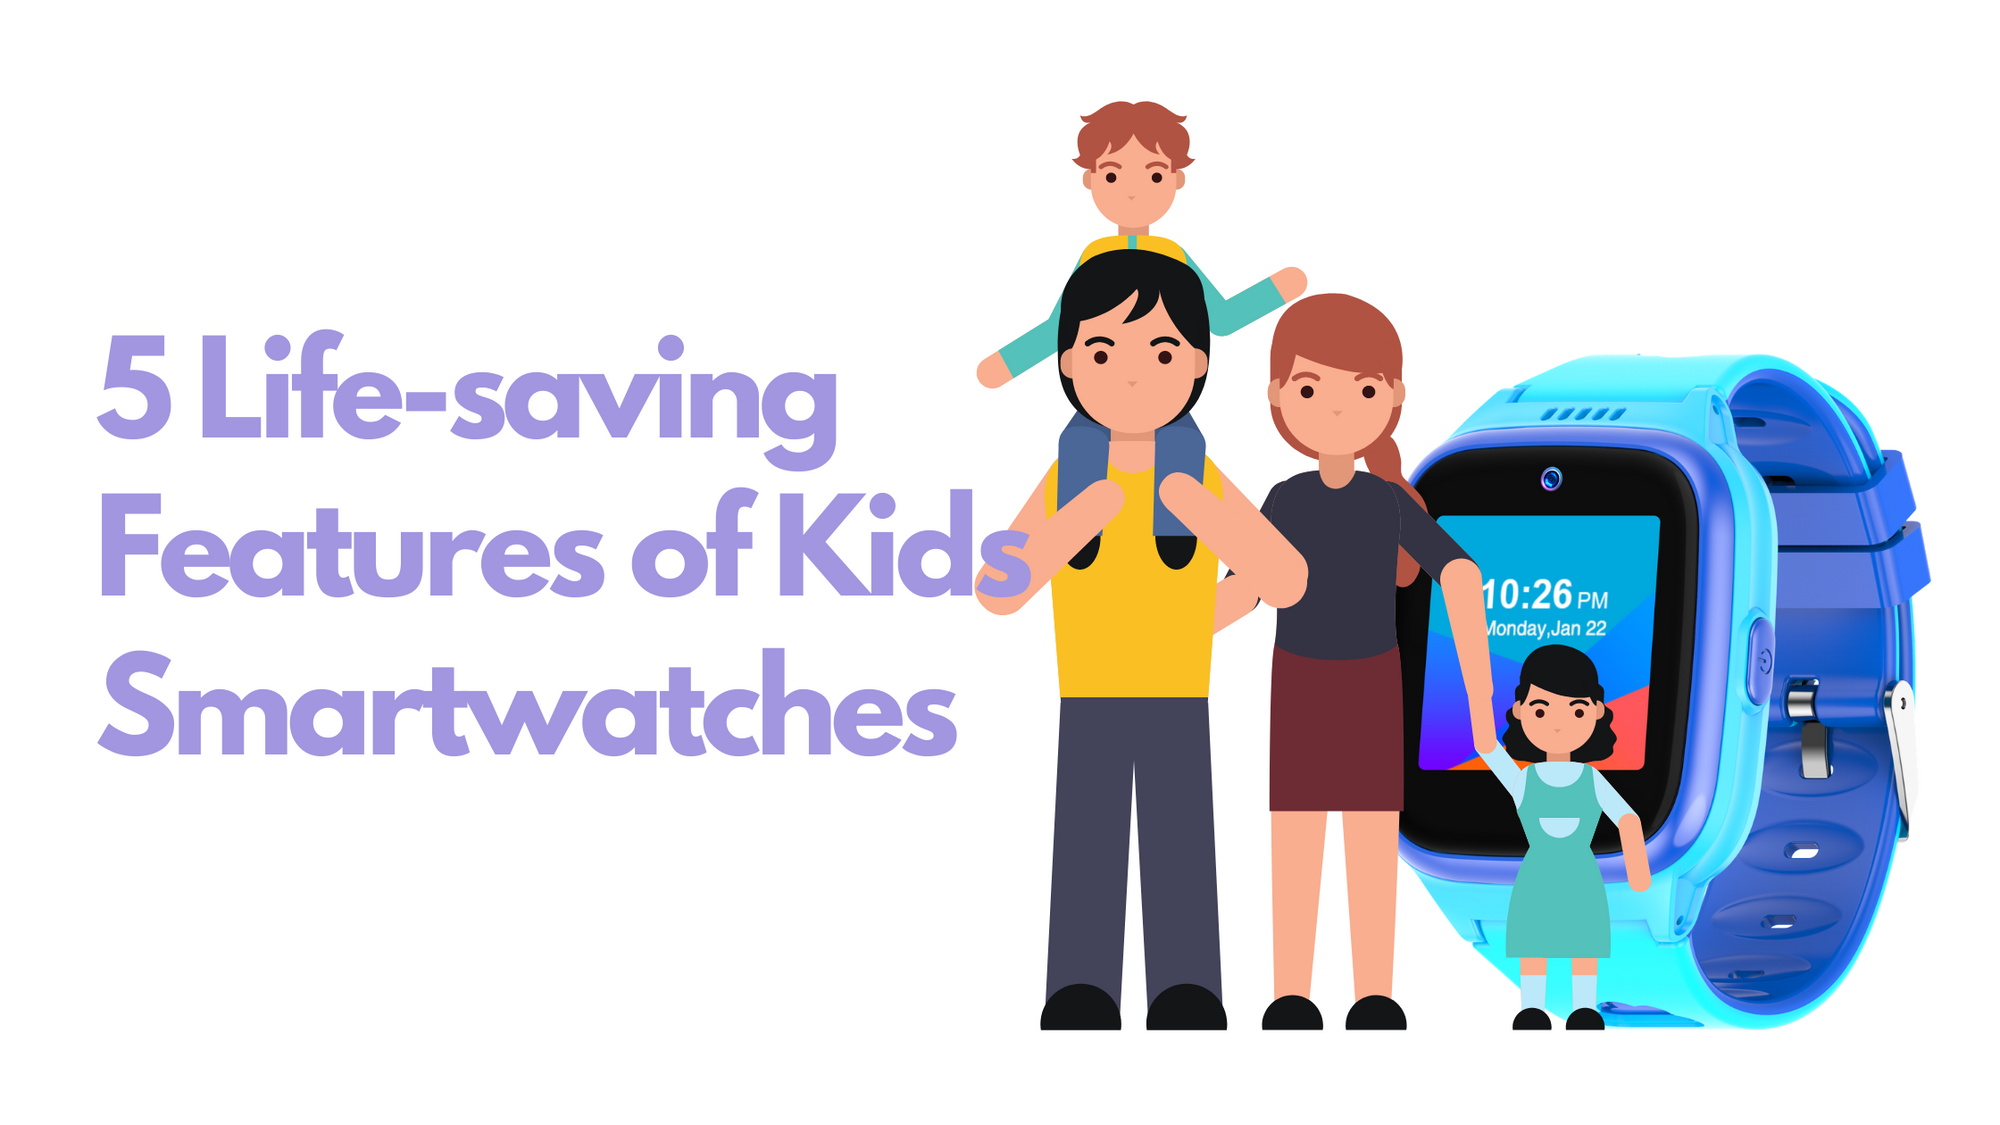 5 Life-saving Features of Smartwatches